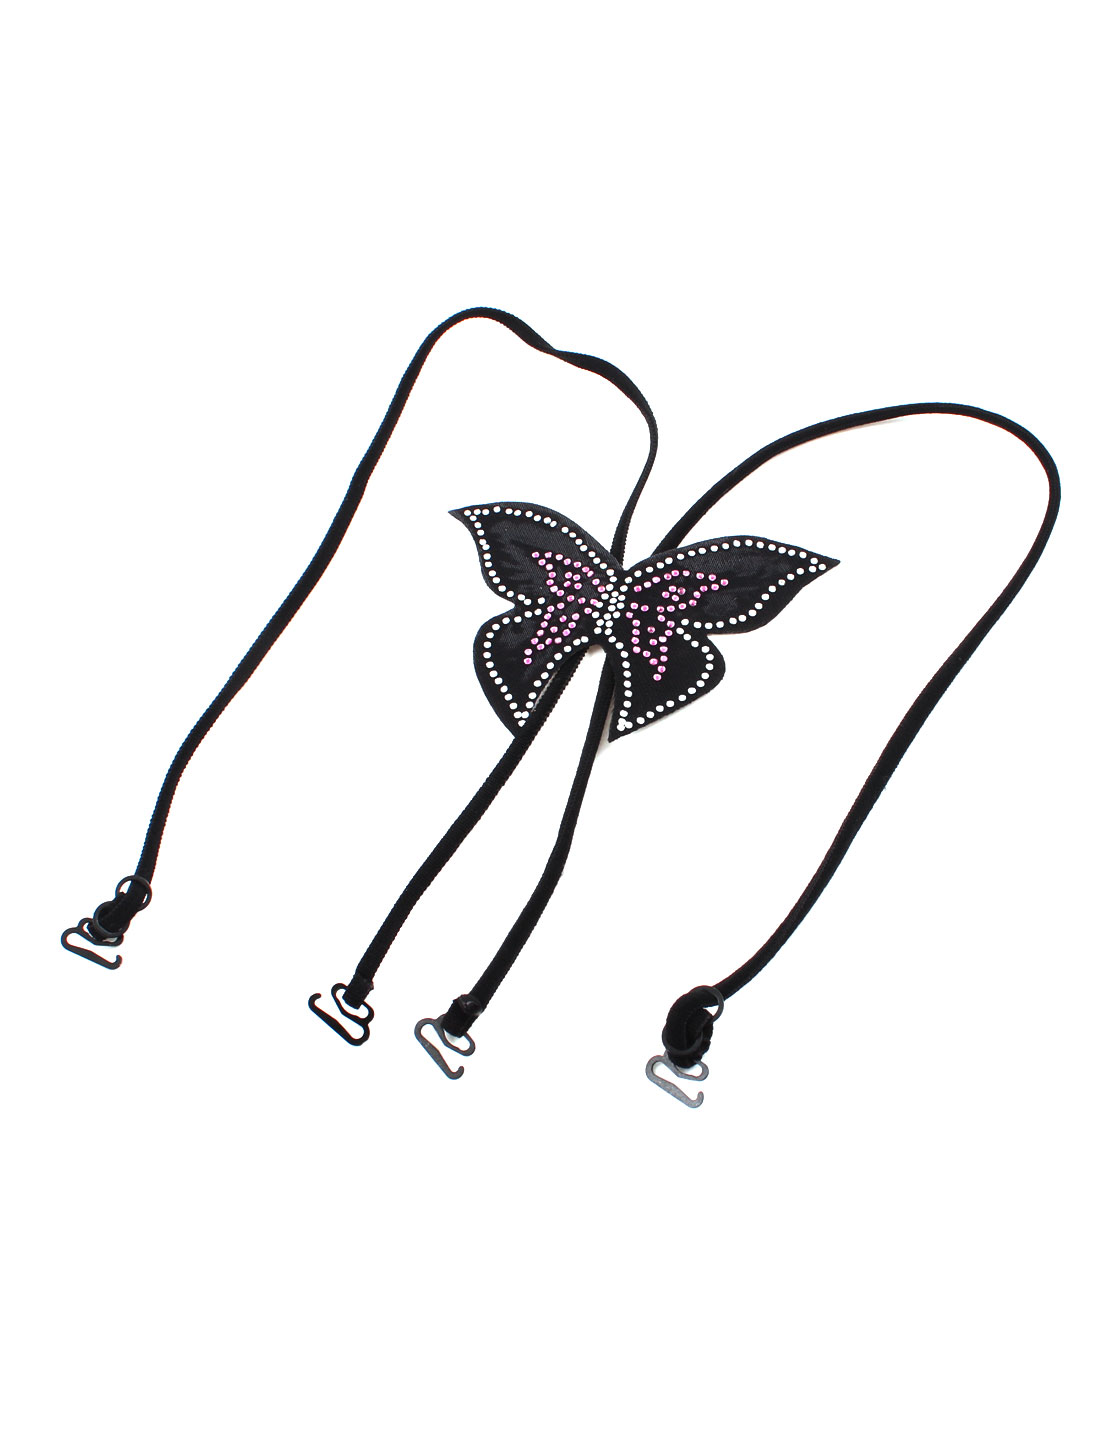 Rhinestone Decor Black Butterfly Cross Back Style Adjustable Bra Shoulder Strap